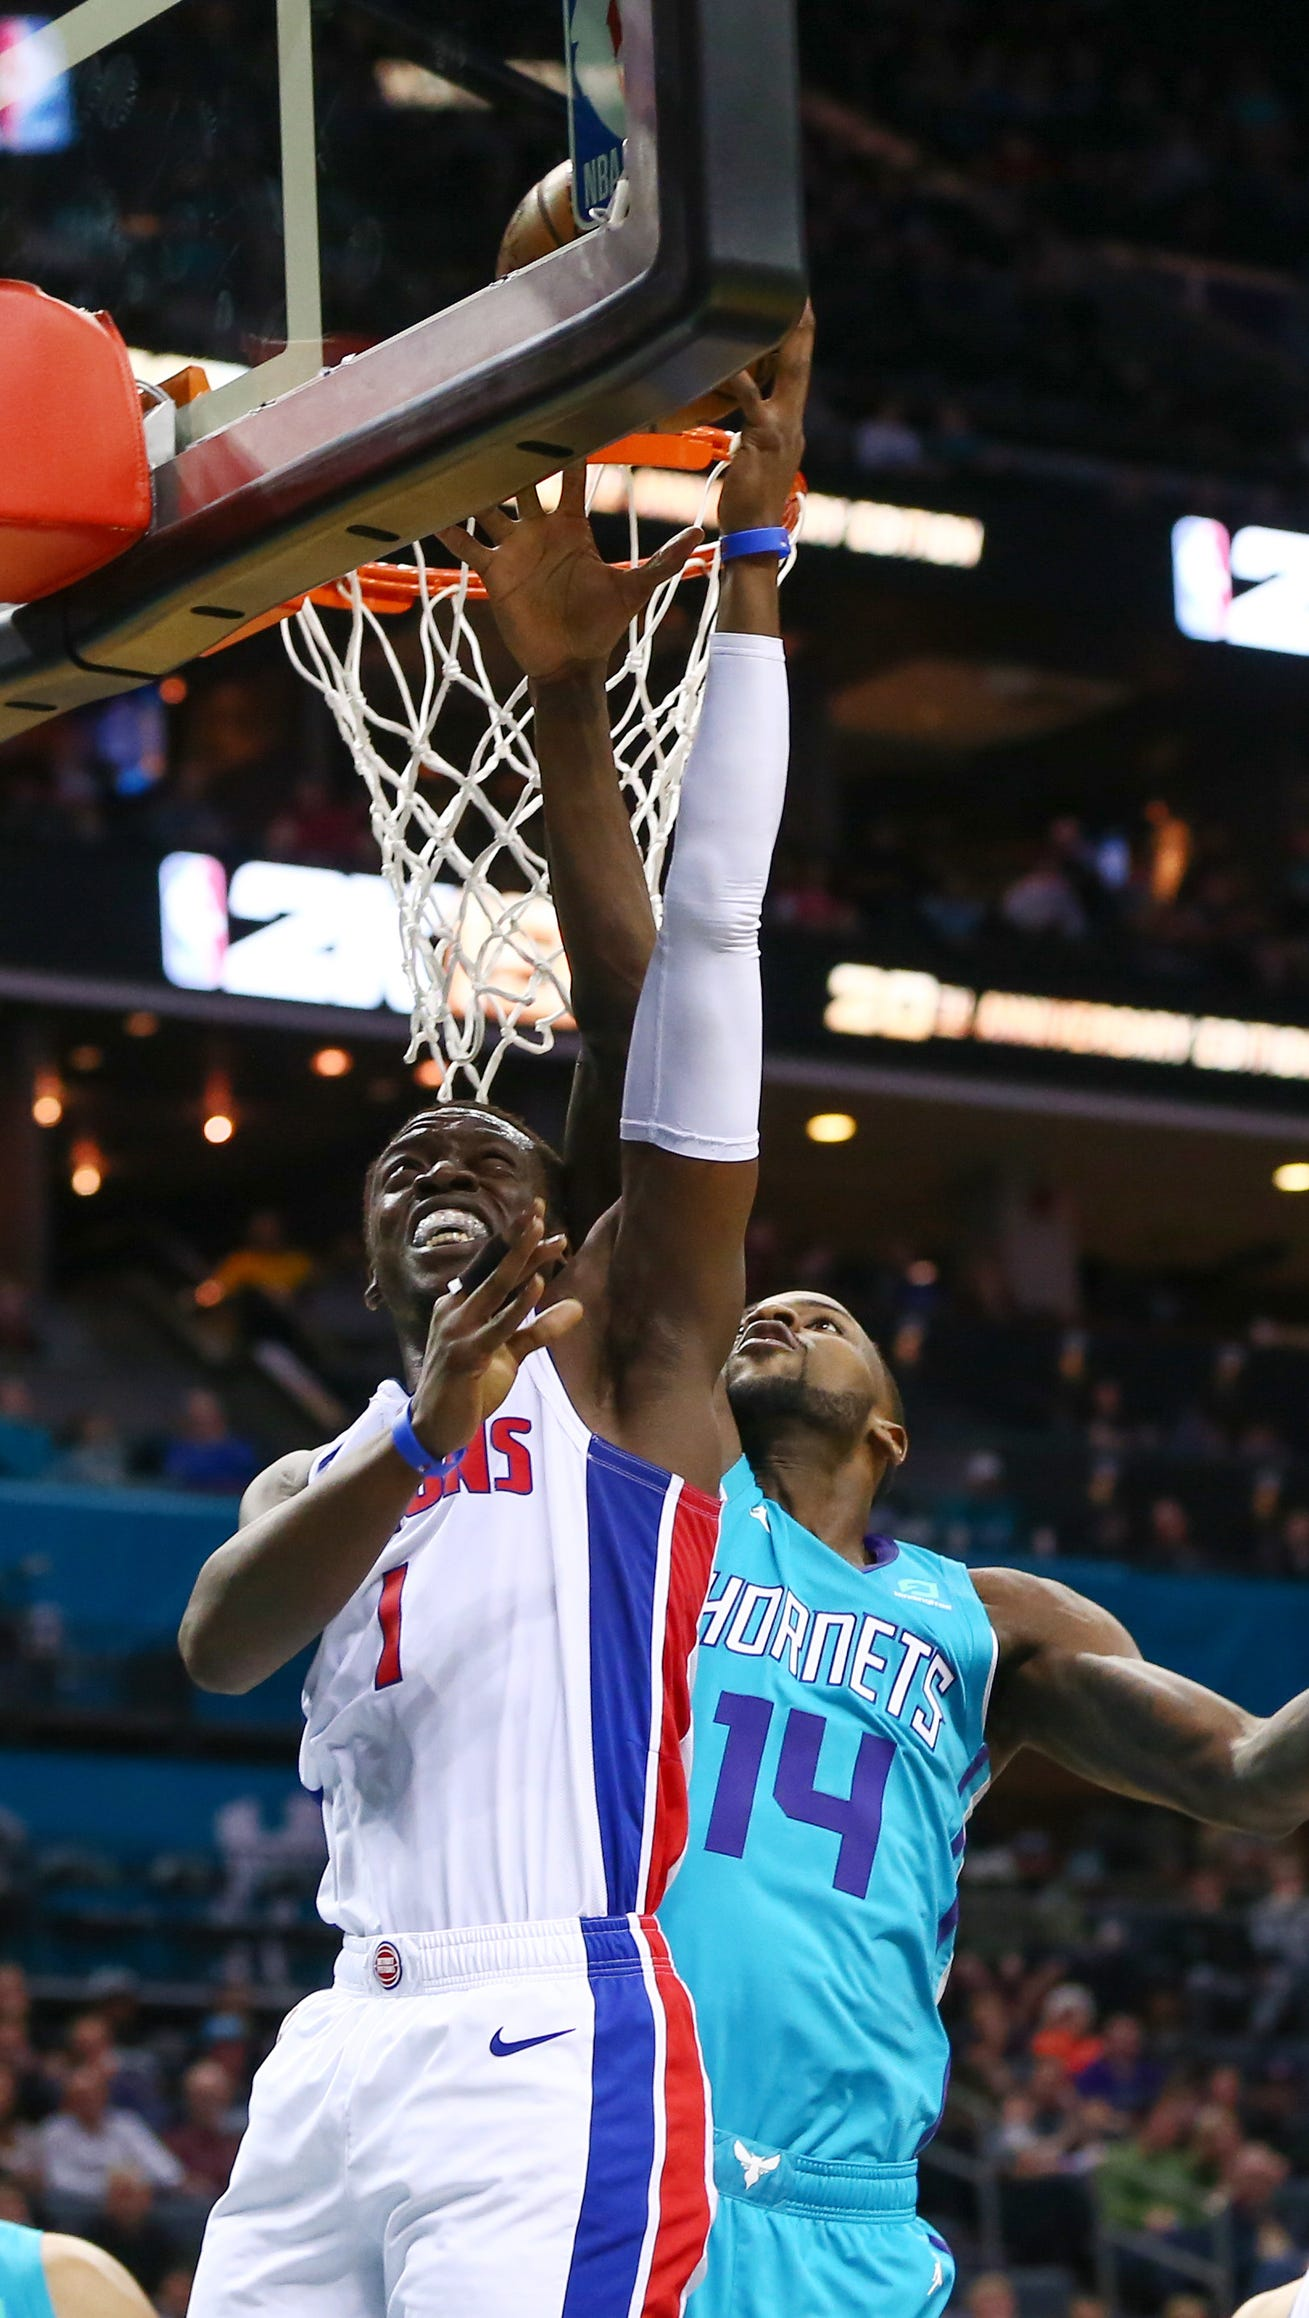 Pistons guard Reggie Jackson shoots the ball against Hornets forward Michael Kidd-Gilchrist during the first half in Charlotte, N.C., on Friday, Dec. 21, 2018.